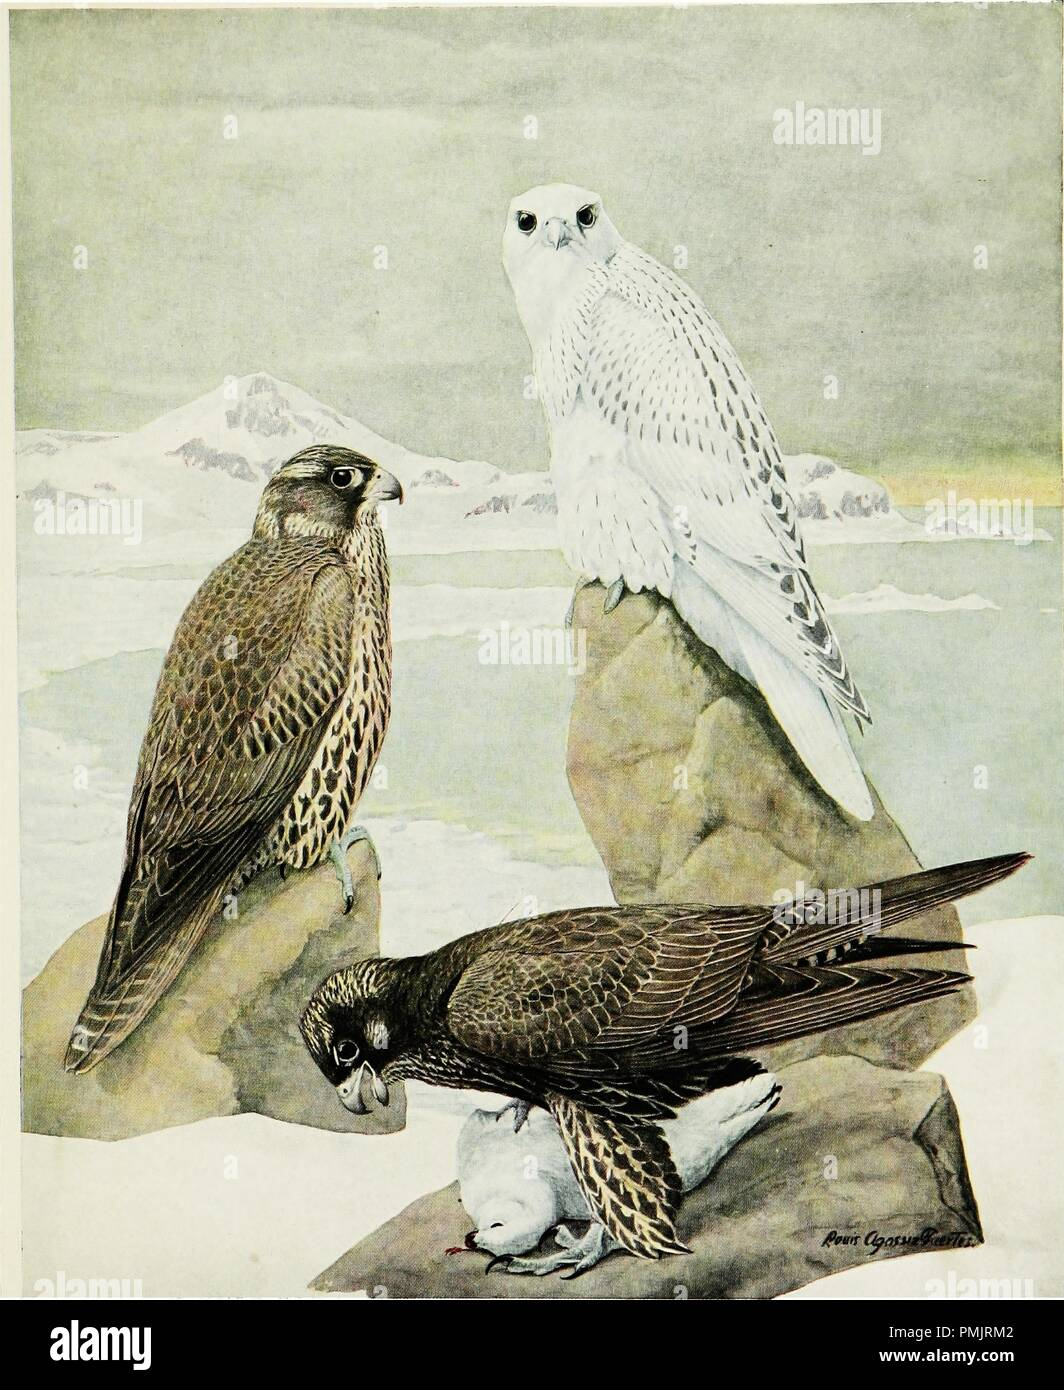 Drawing of three variations of Gyrfalcons, from the book 'Birds of New York', 1508. Courtesy Internet Archive. () - Stock Image